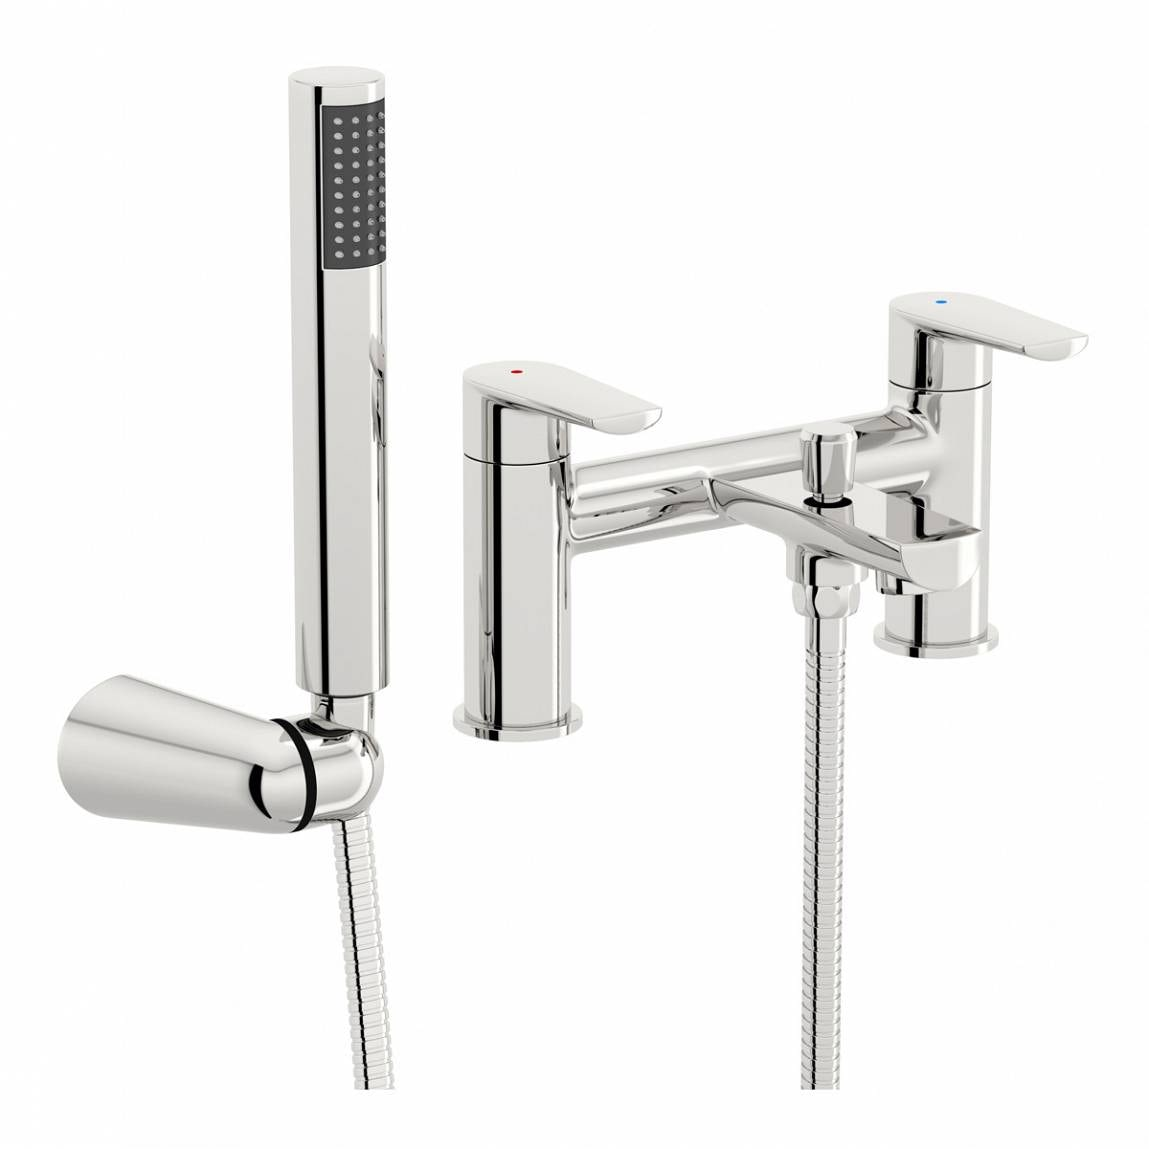 Langdale bath shower mixer tap